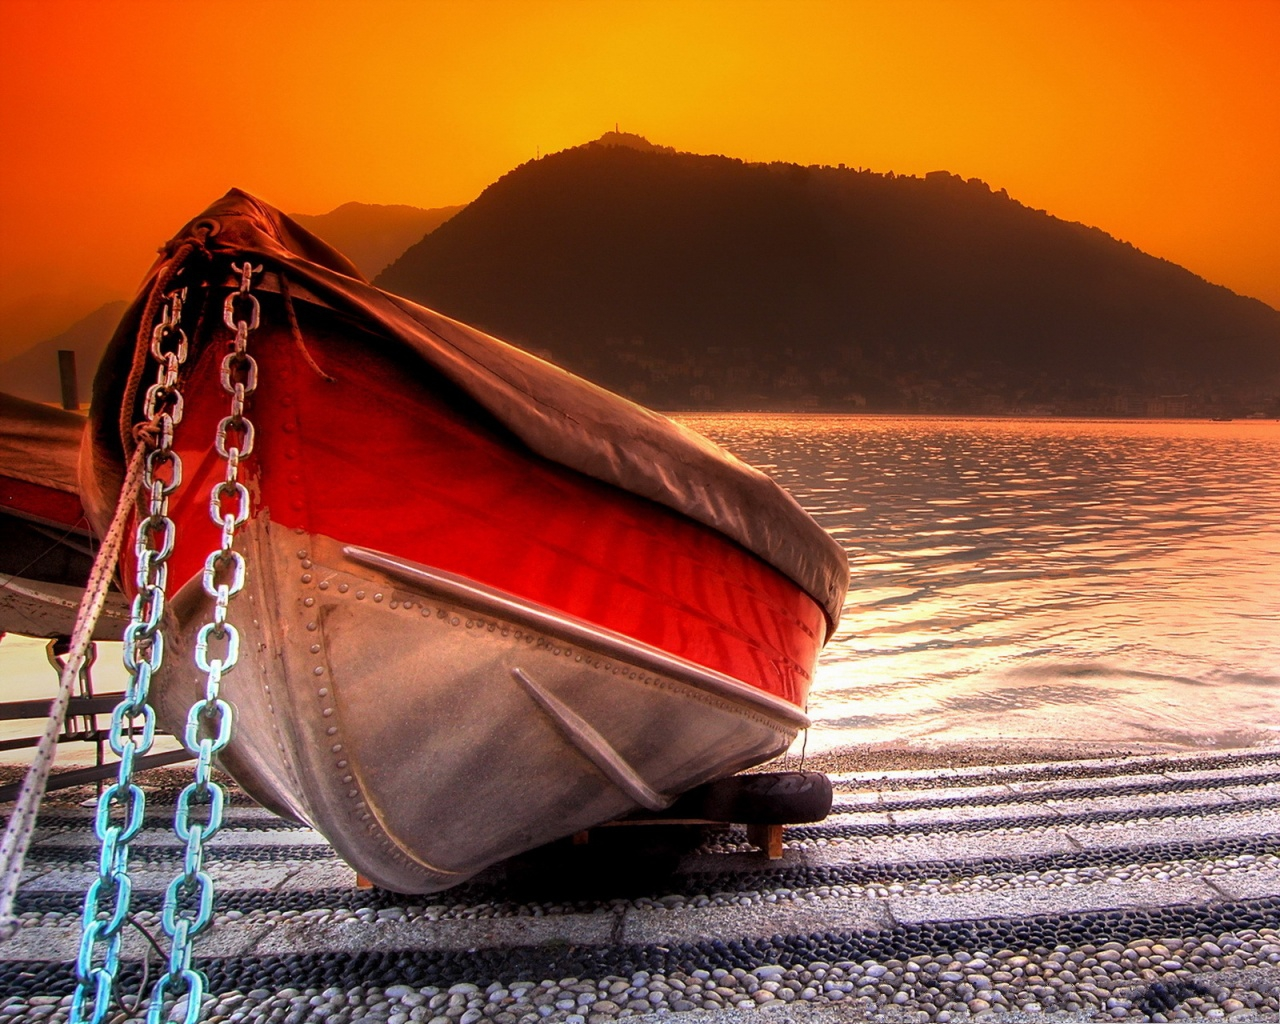 click to free download the wallpaper--Nature Landscape of the Sea, Beautiful Ship Under the Red Sky 1280X1024 free wallpaper download